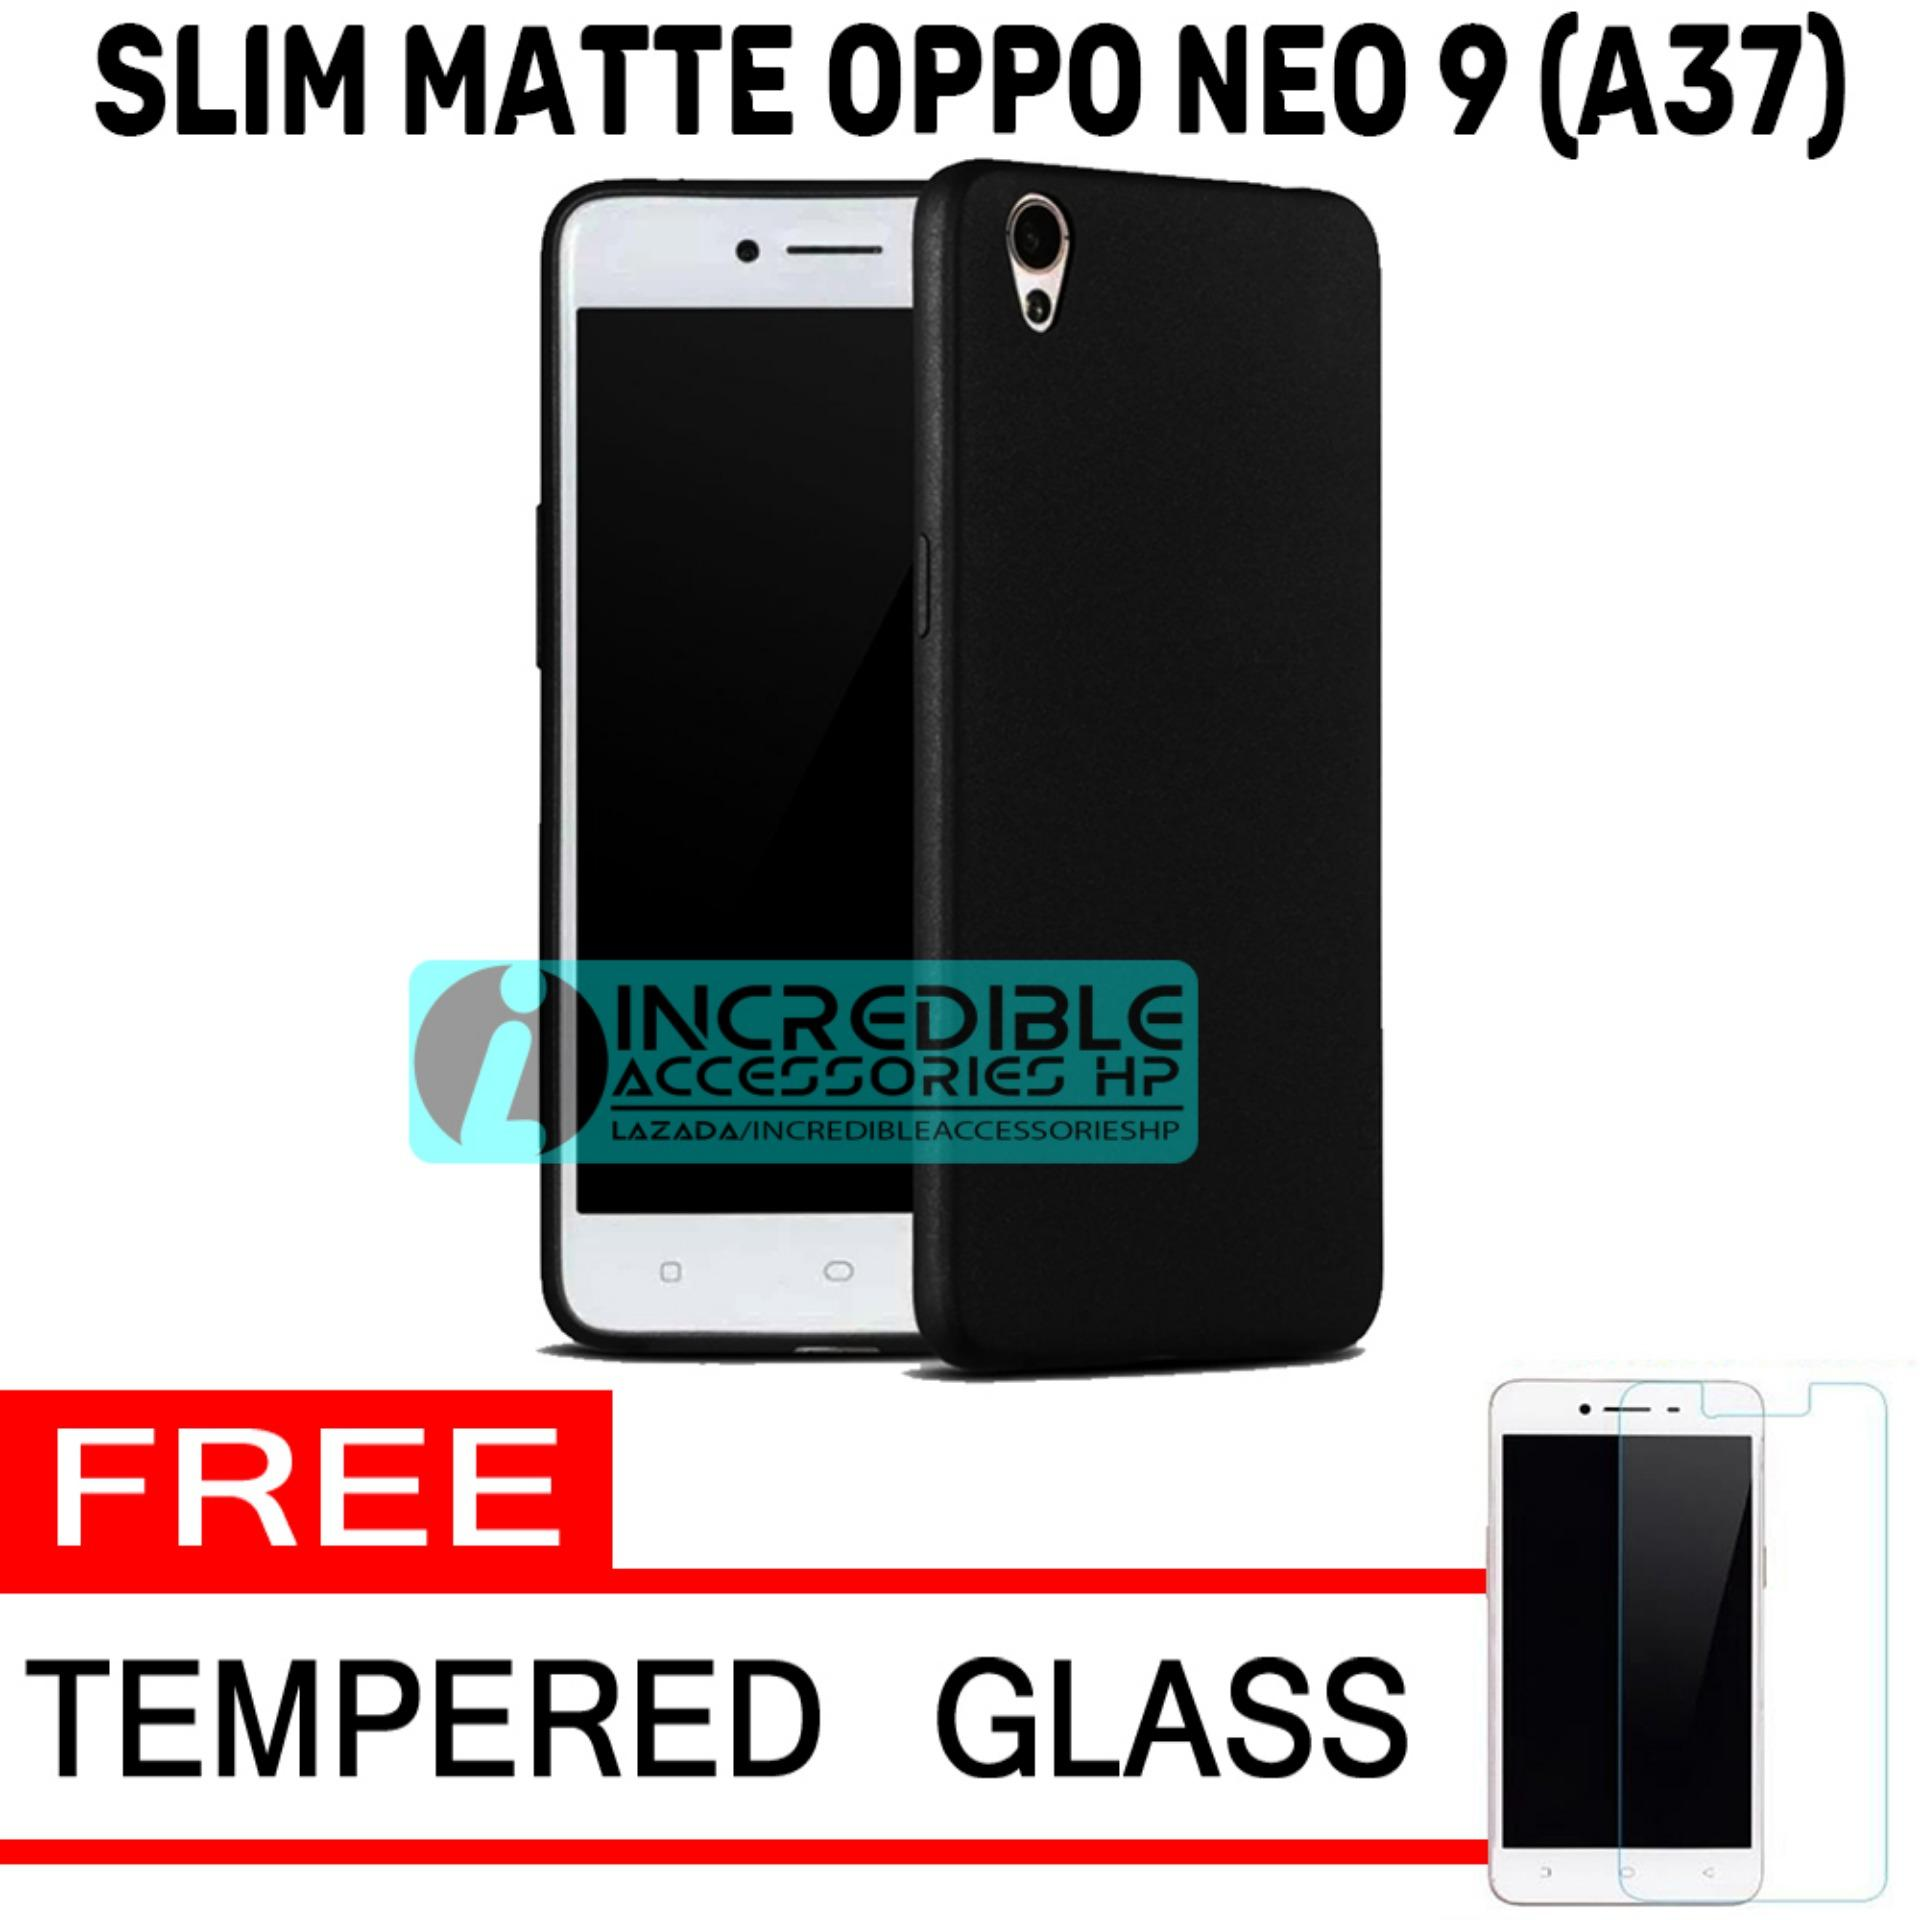 Oppo A37 / Oppo Neo 9 Baby Skin Soft Anti Fingerprint Babby Skin Softase Silicon Slim Matte Ultra Slim - Black + Free Tempered Glass